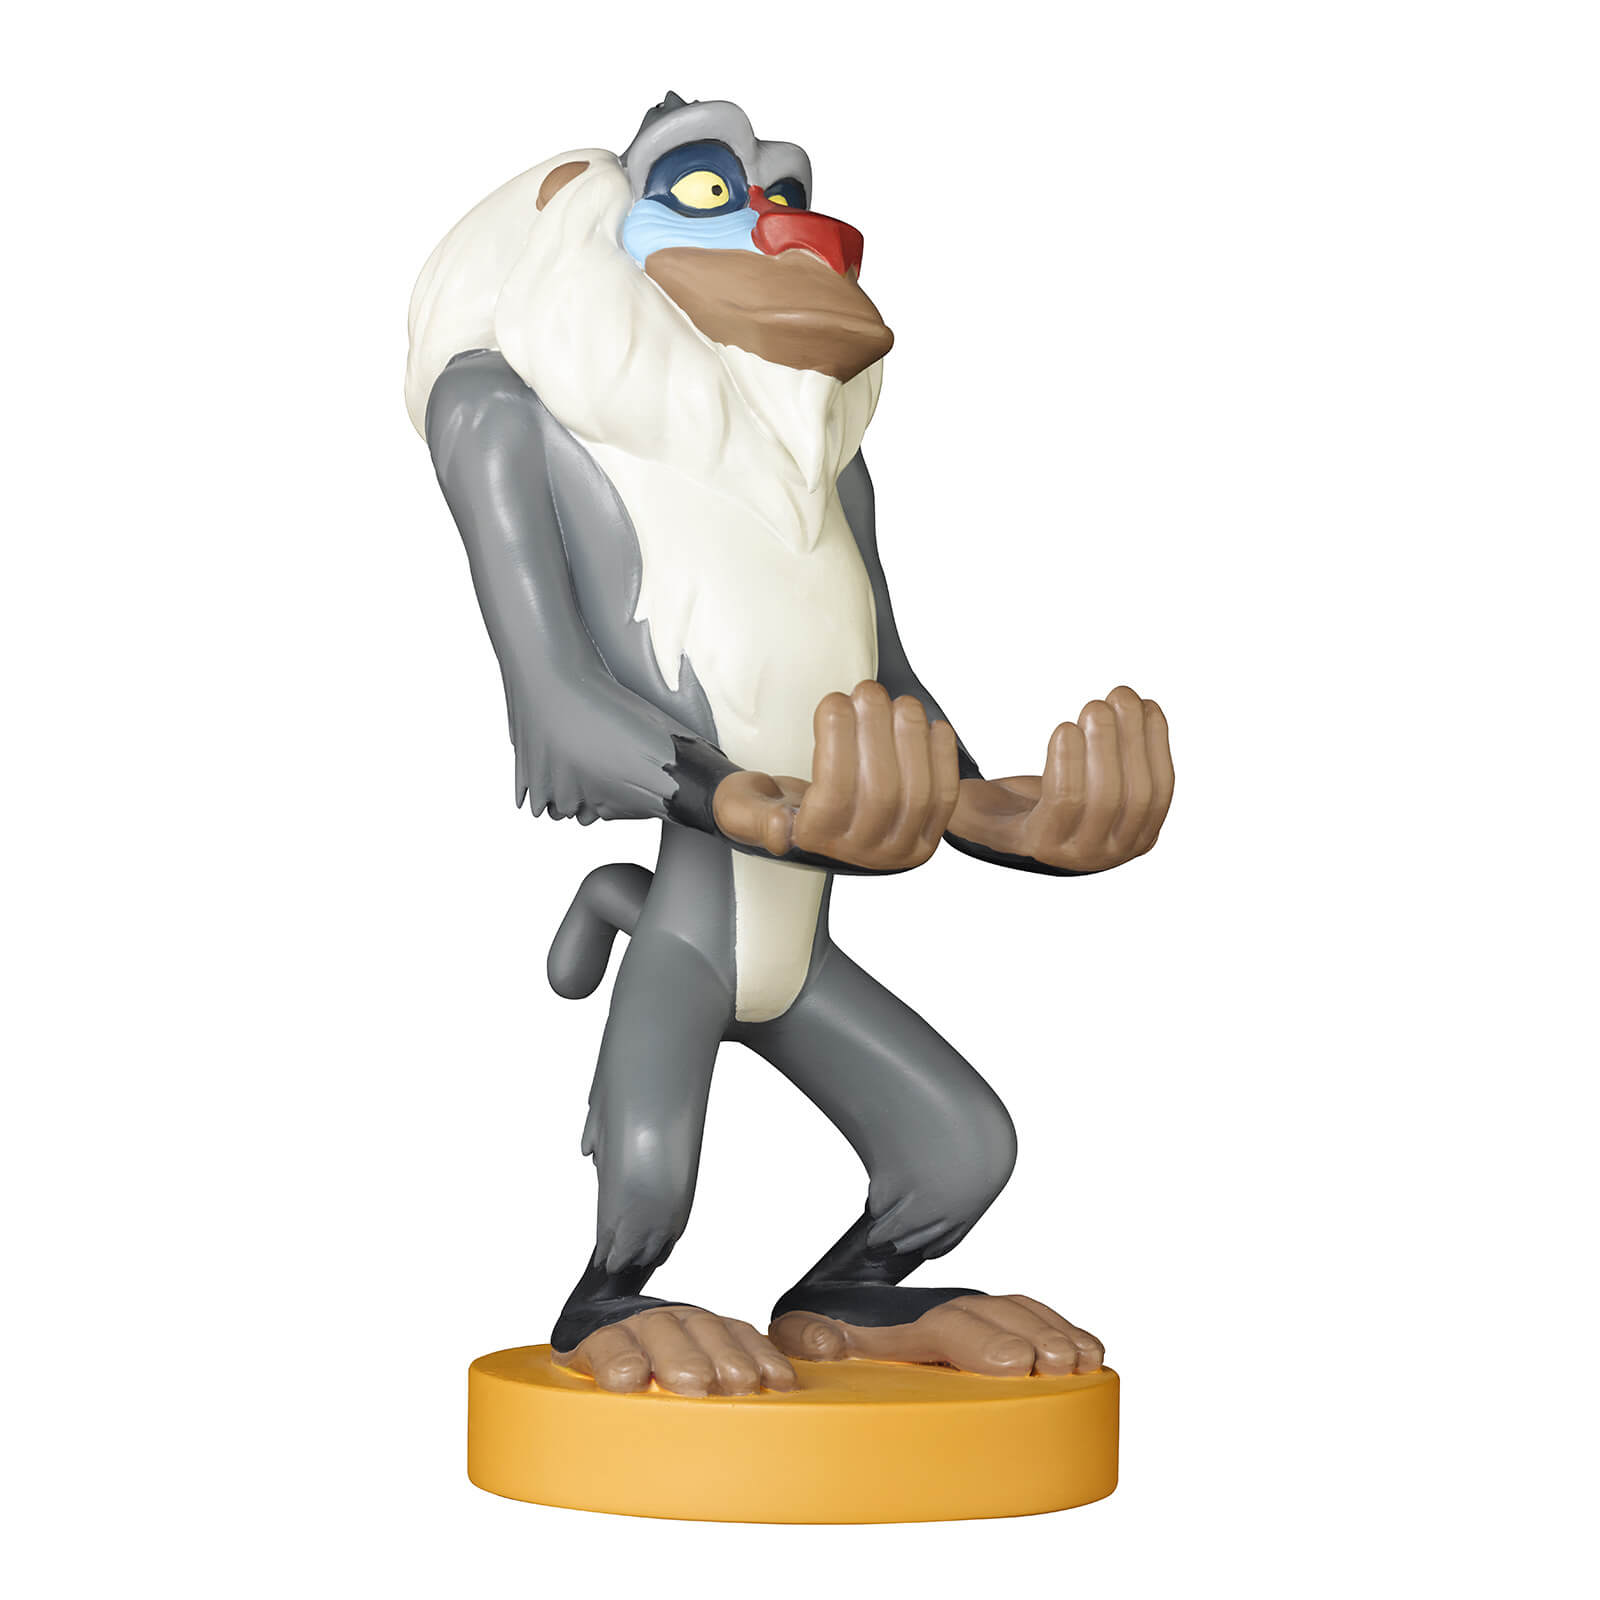 Image of Disney Collectable Lion King Rafiki 8 Inch Cable Guy Controller and Smartphone Stand